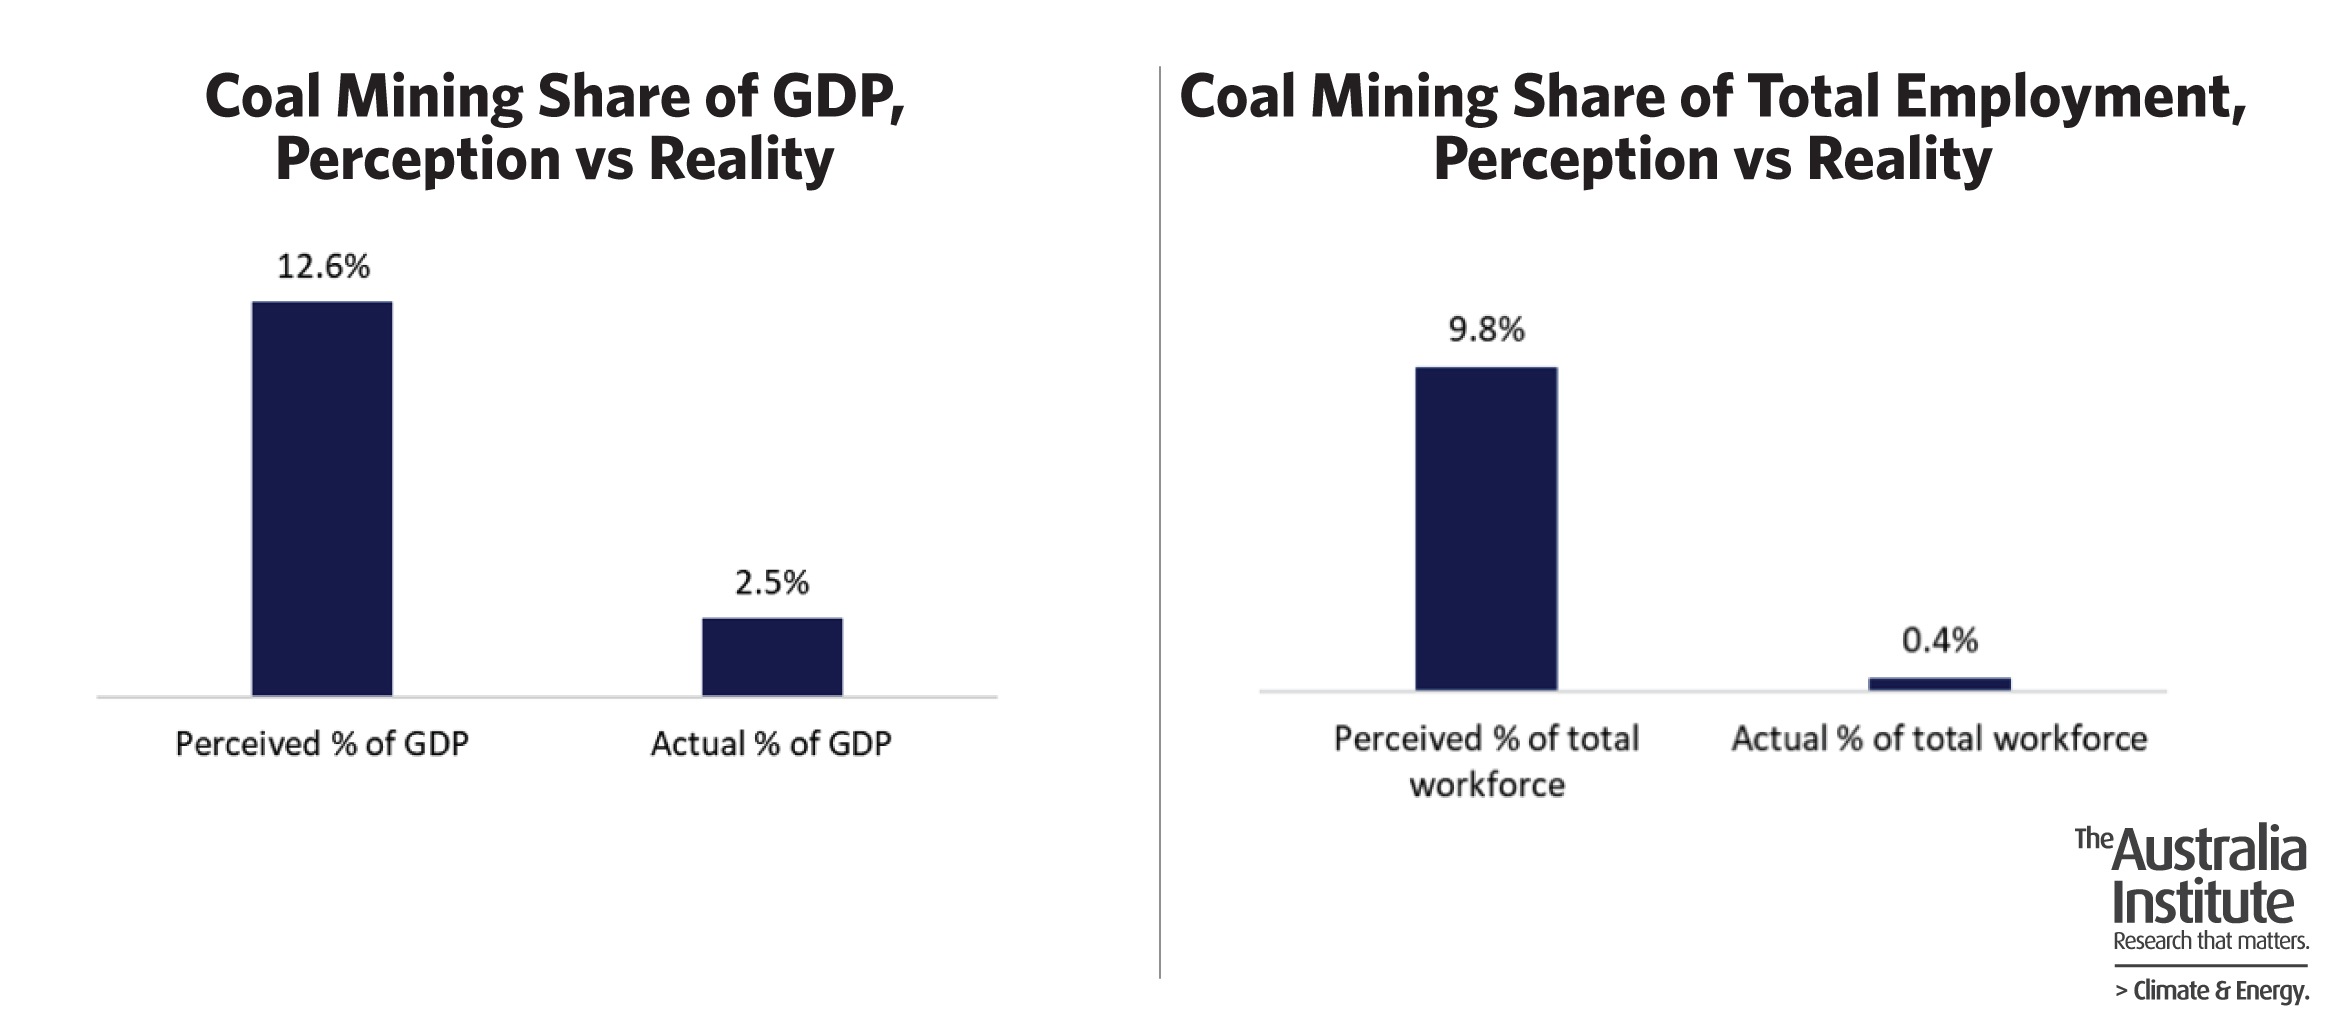 A graph showing coal mining share of GDP and total employment, perception vs reality